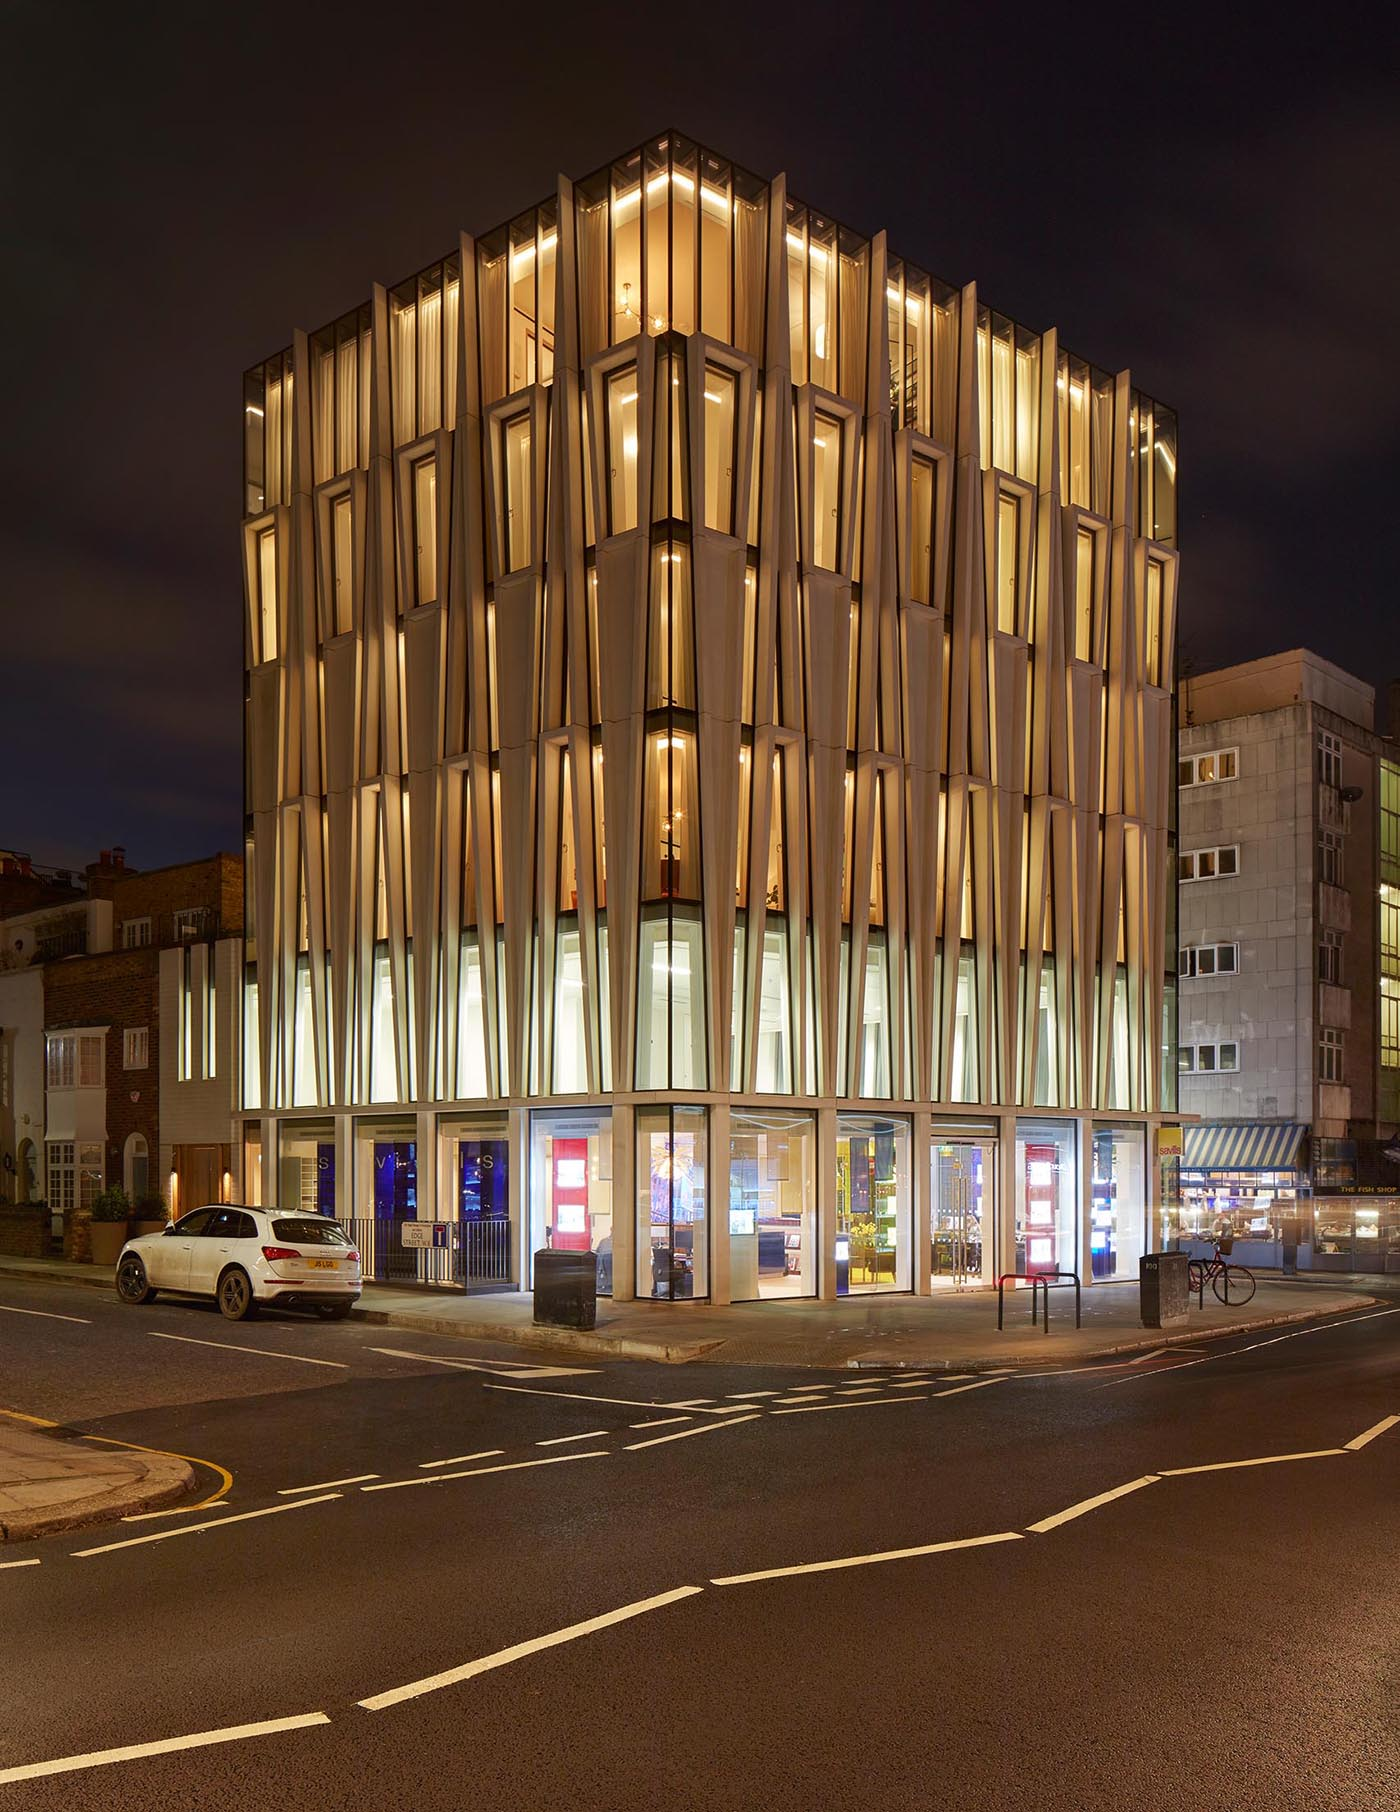 A modern mixed-use building with a facade inspired by candle-making.